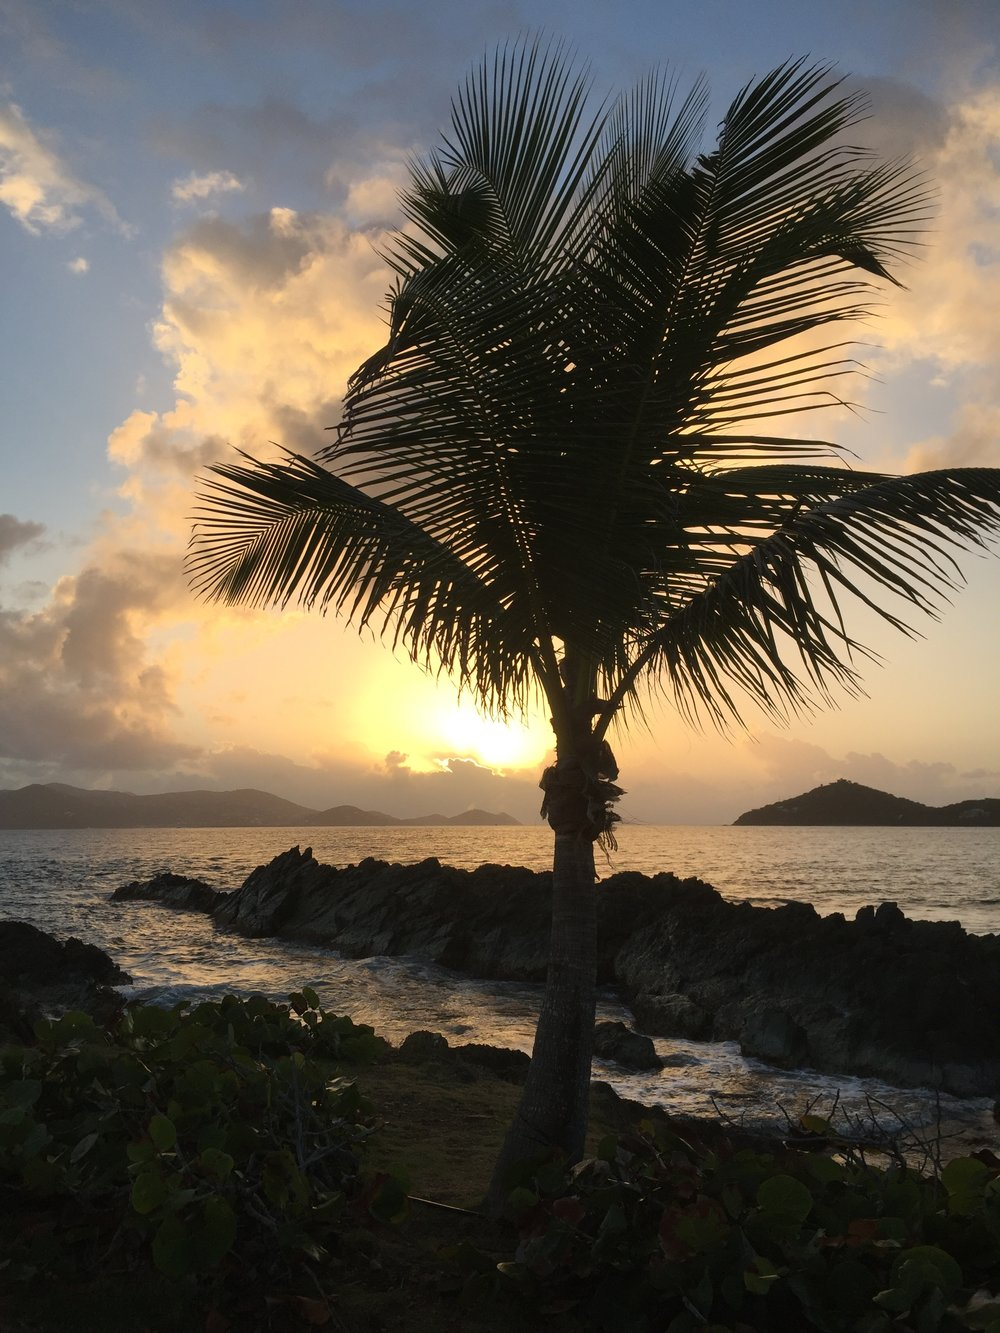 Sunrise from Sapphire Beach looking towards St. John